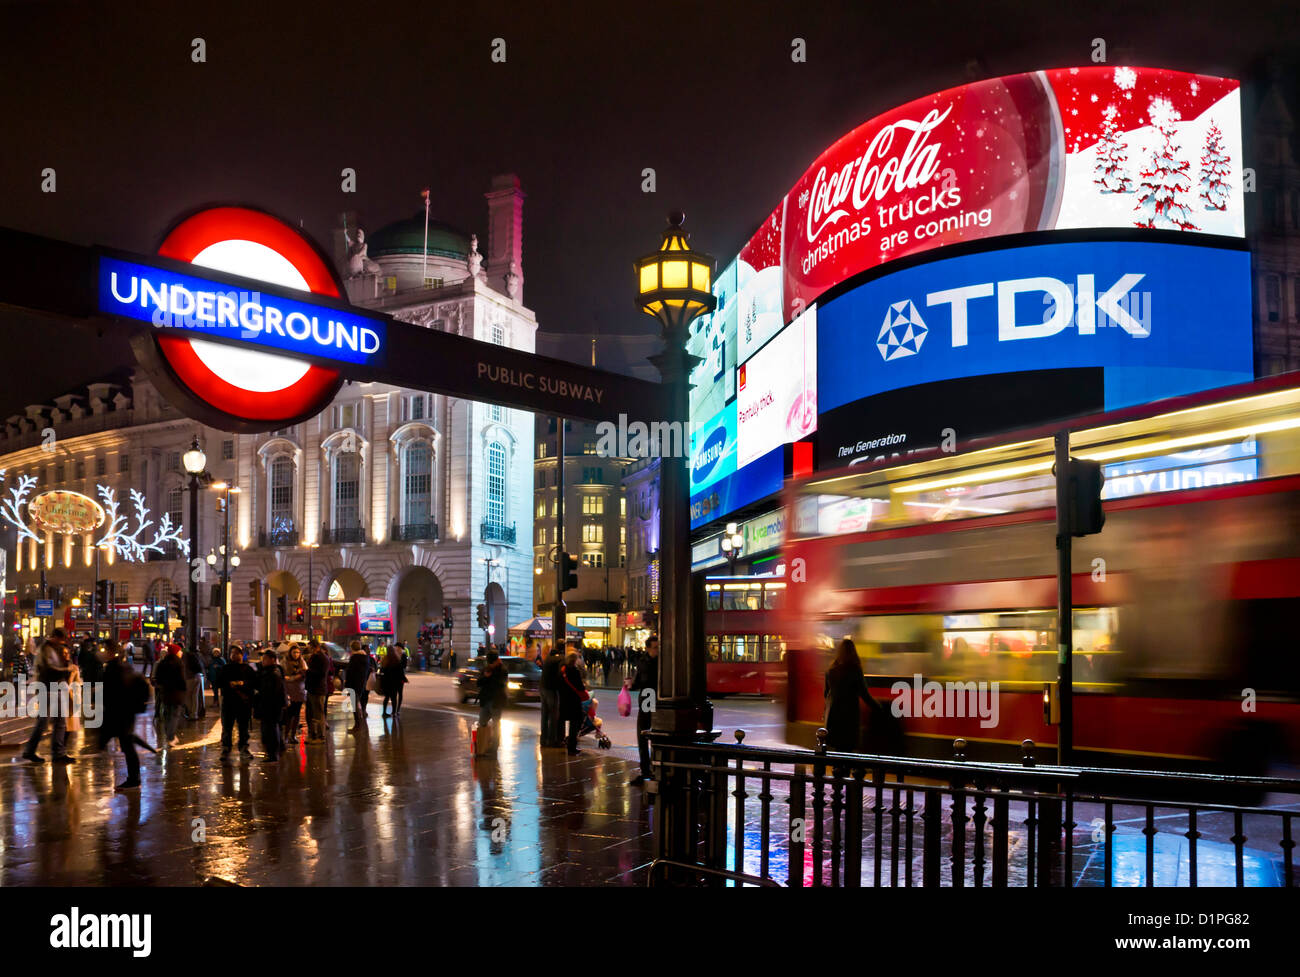 People and red London bus on a Busy night near Piccadilly Circus underground station sign Central London England - Stock Image